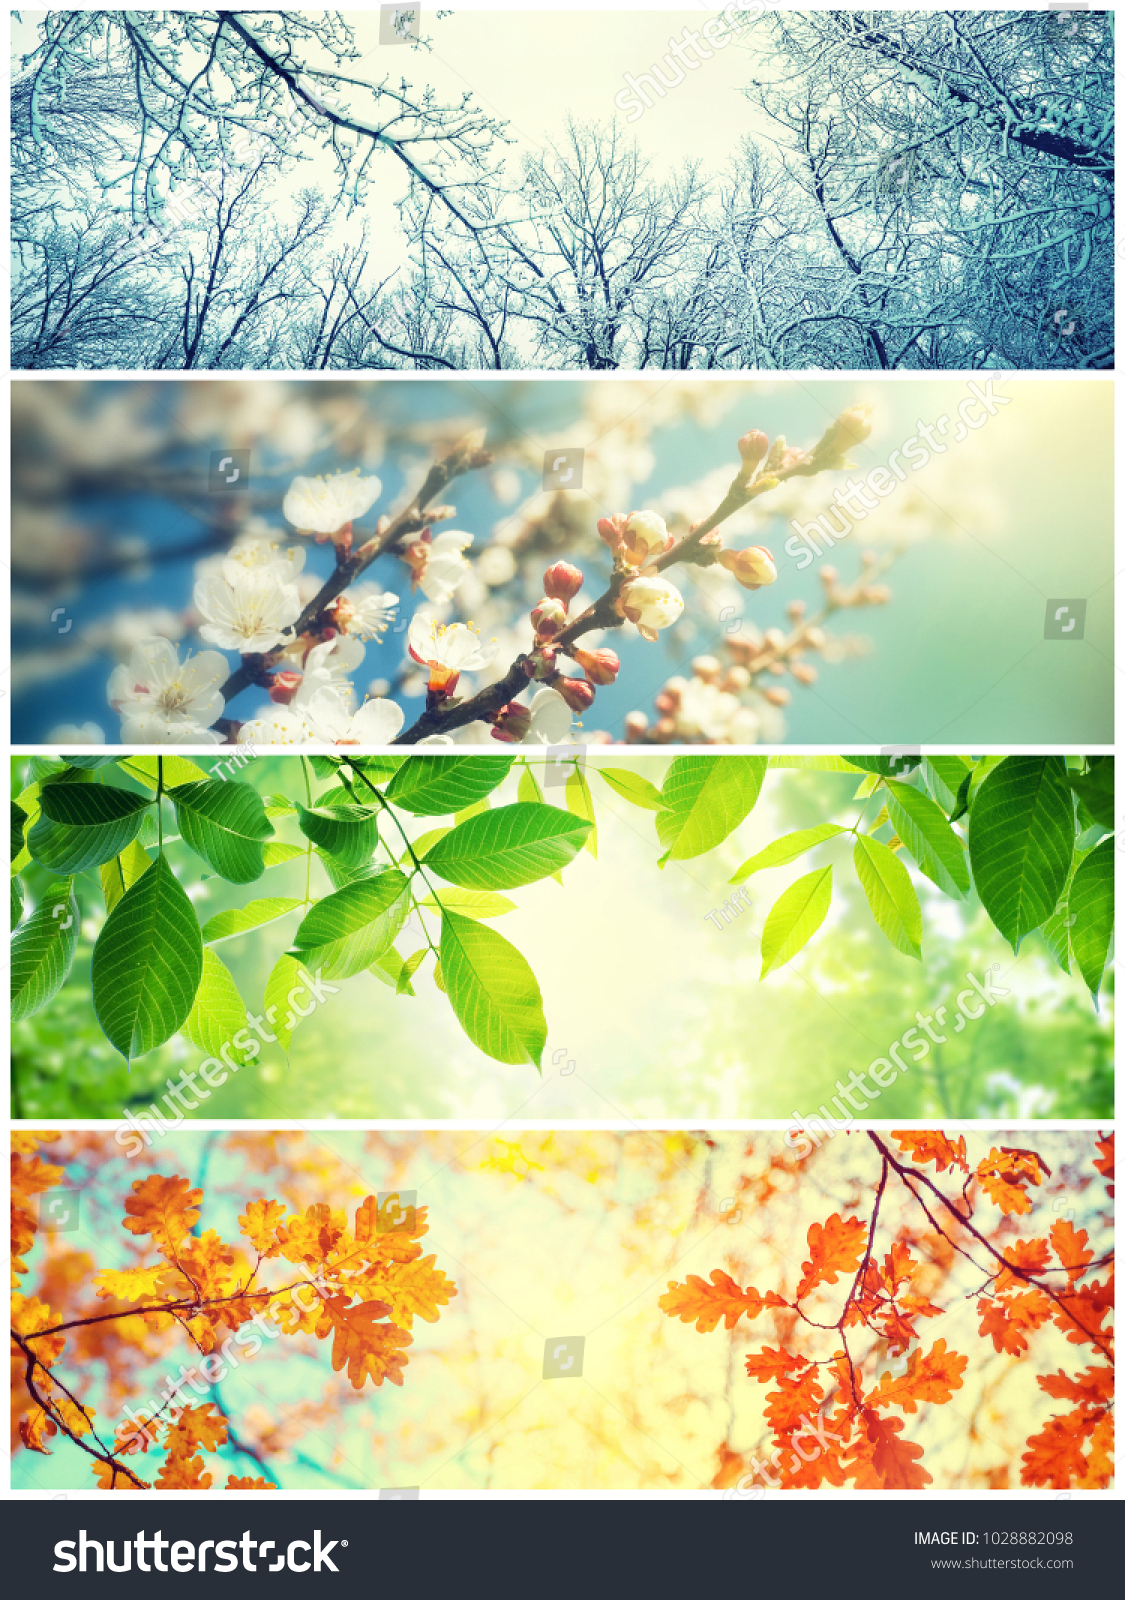 Four seasons. A pictures that shows four different pictures representing the four seasons: Spring, summer, autumn and winter #1028882098